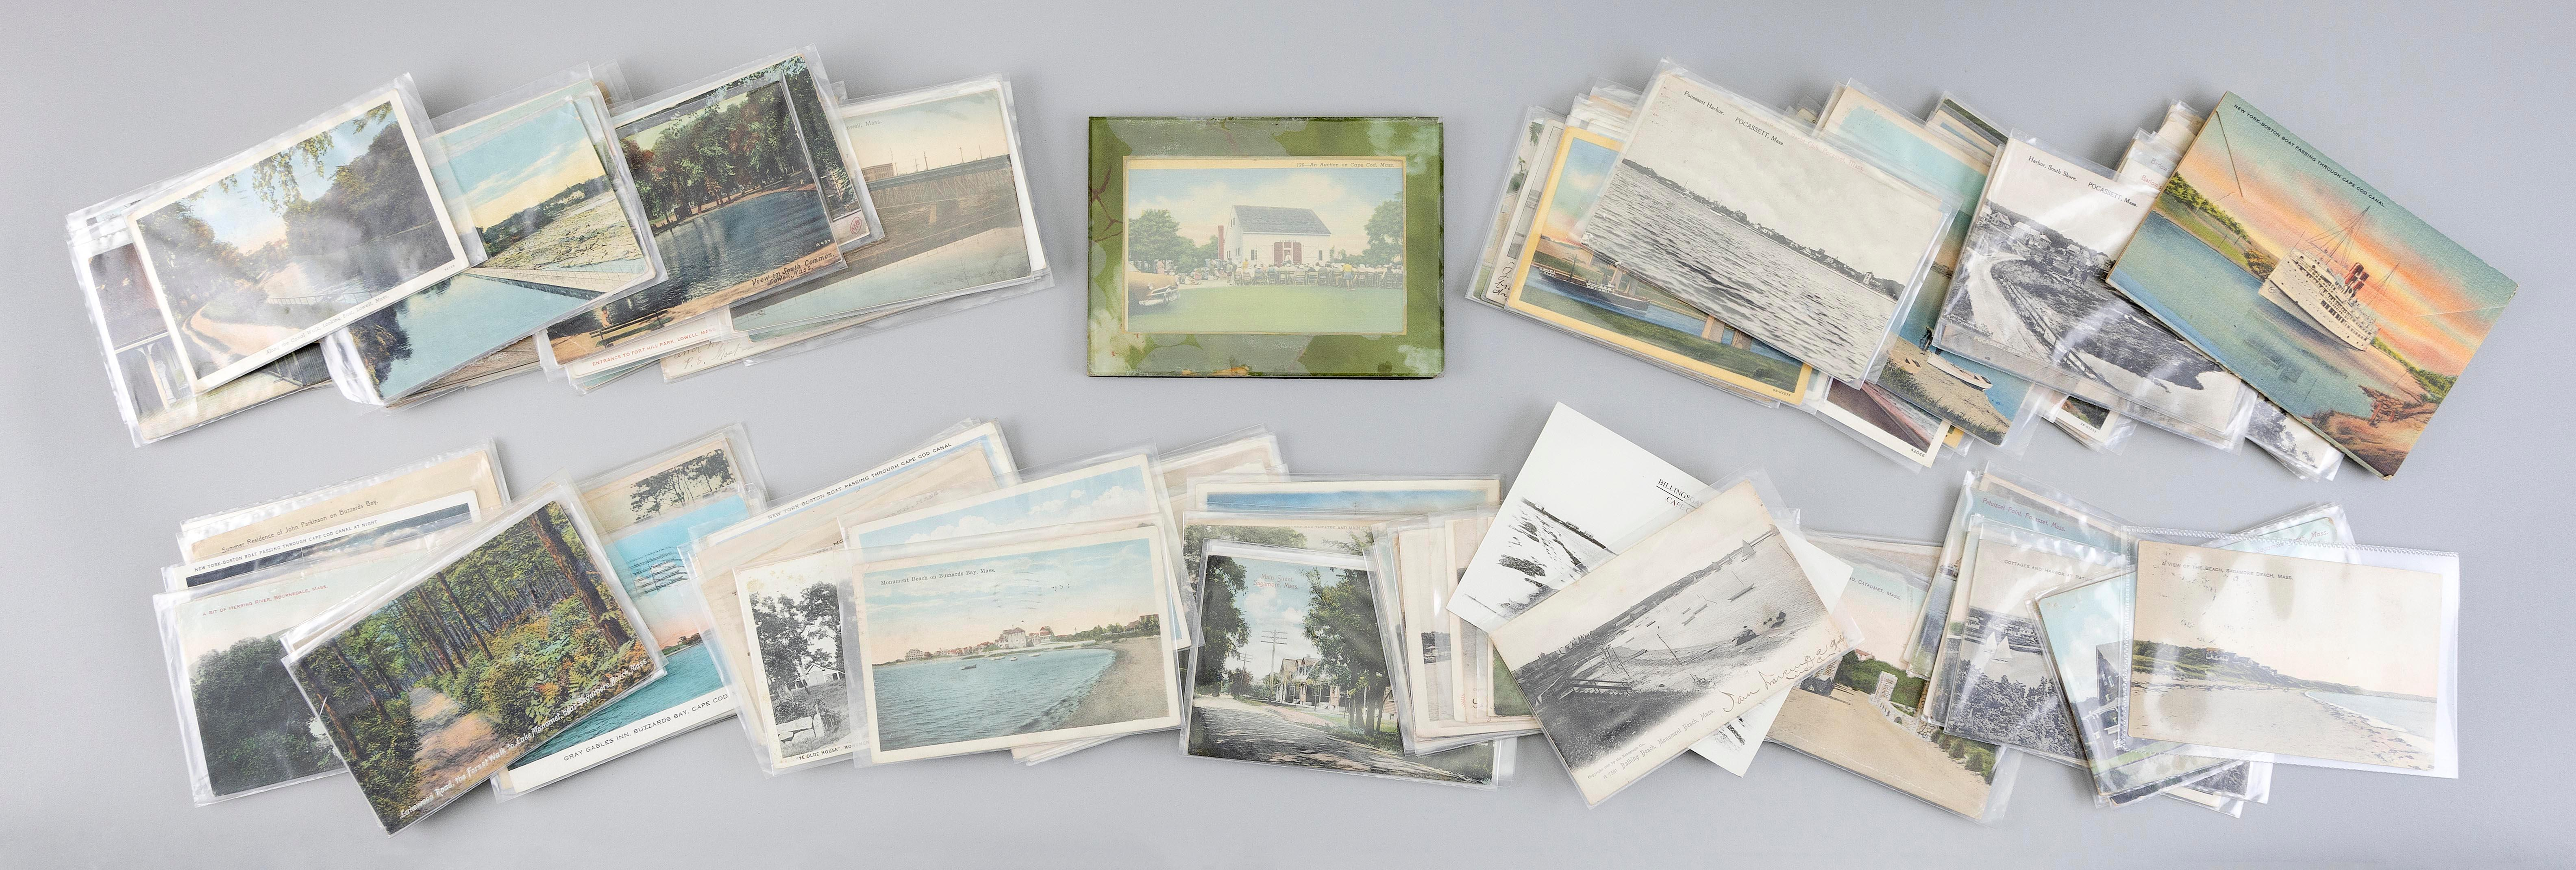 MASSACHUSETTS (CAPE COD CANAL, ADJACENT TOWNS AND LOWELL): 198 POSTCARDS Early 20th Century